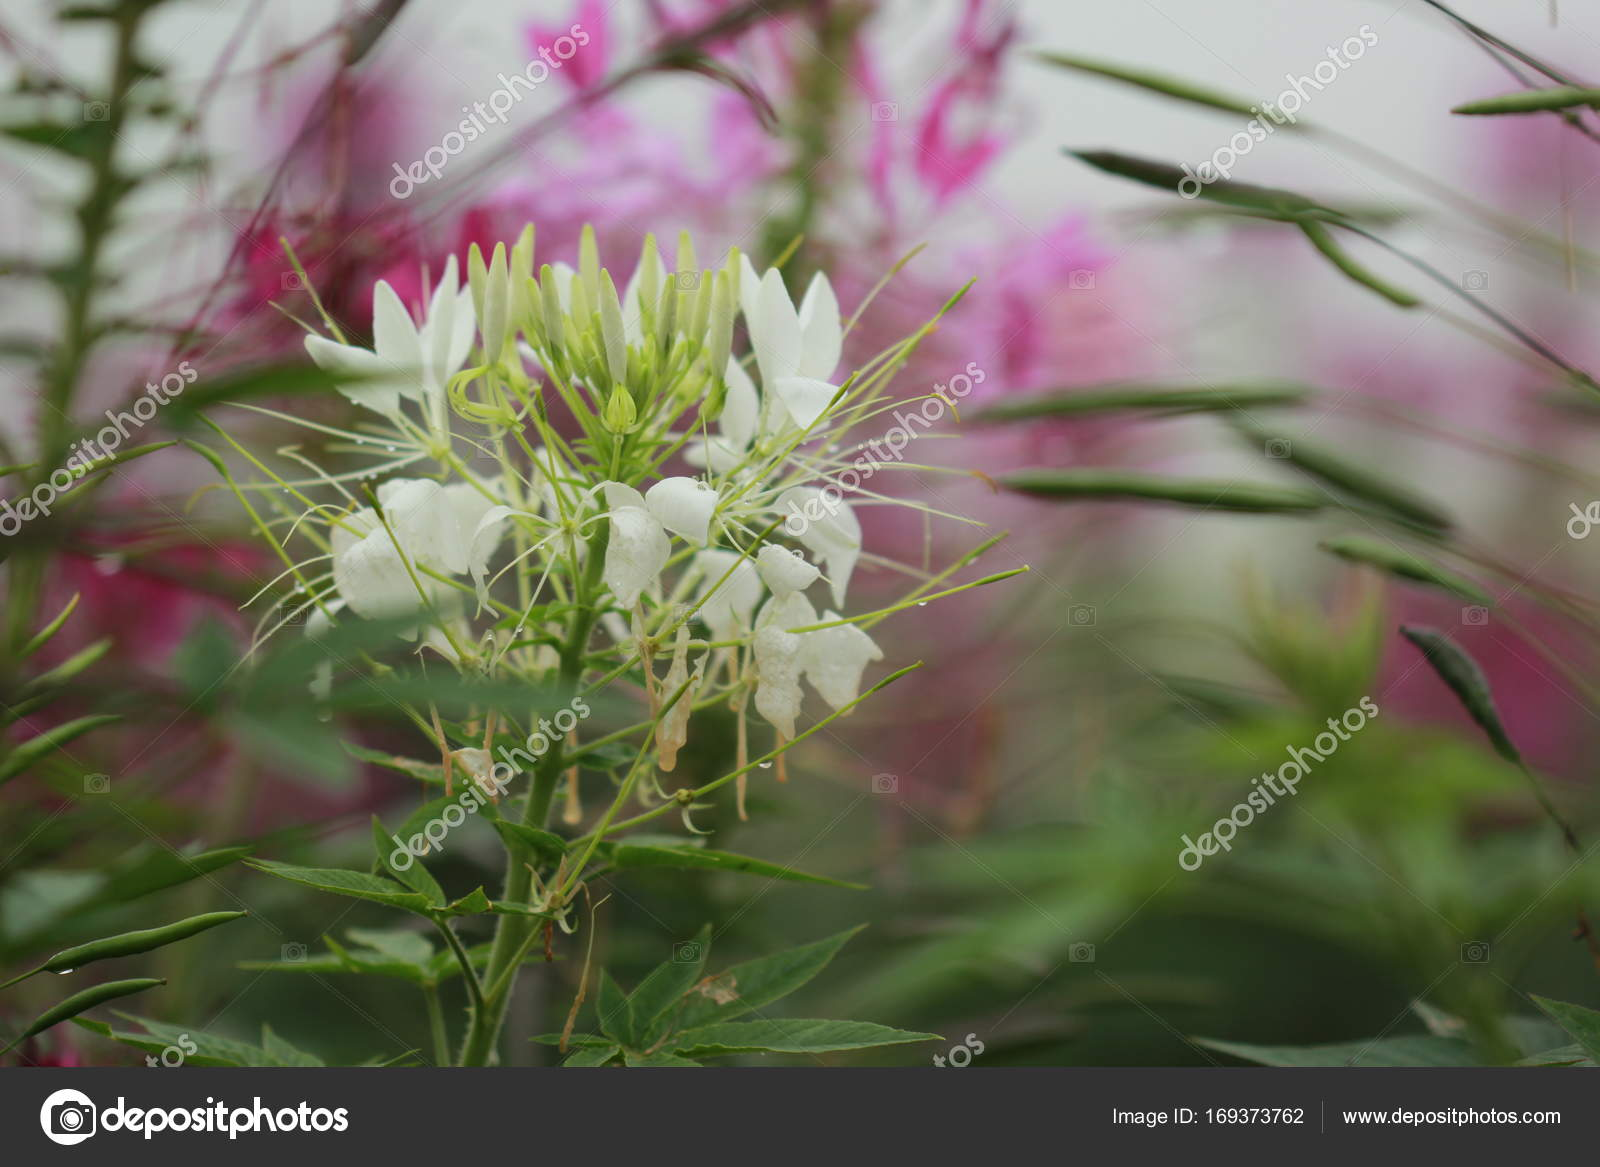 White spider flower close up stock photo verapon 169373762 white spider flower close up stock photo mightylinksfo